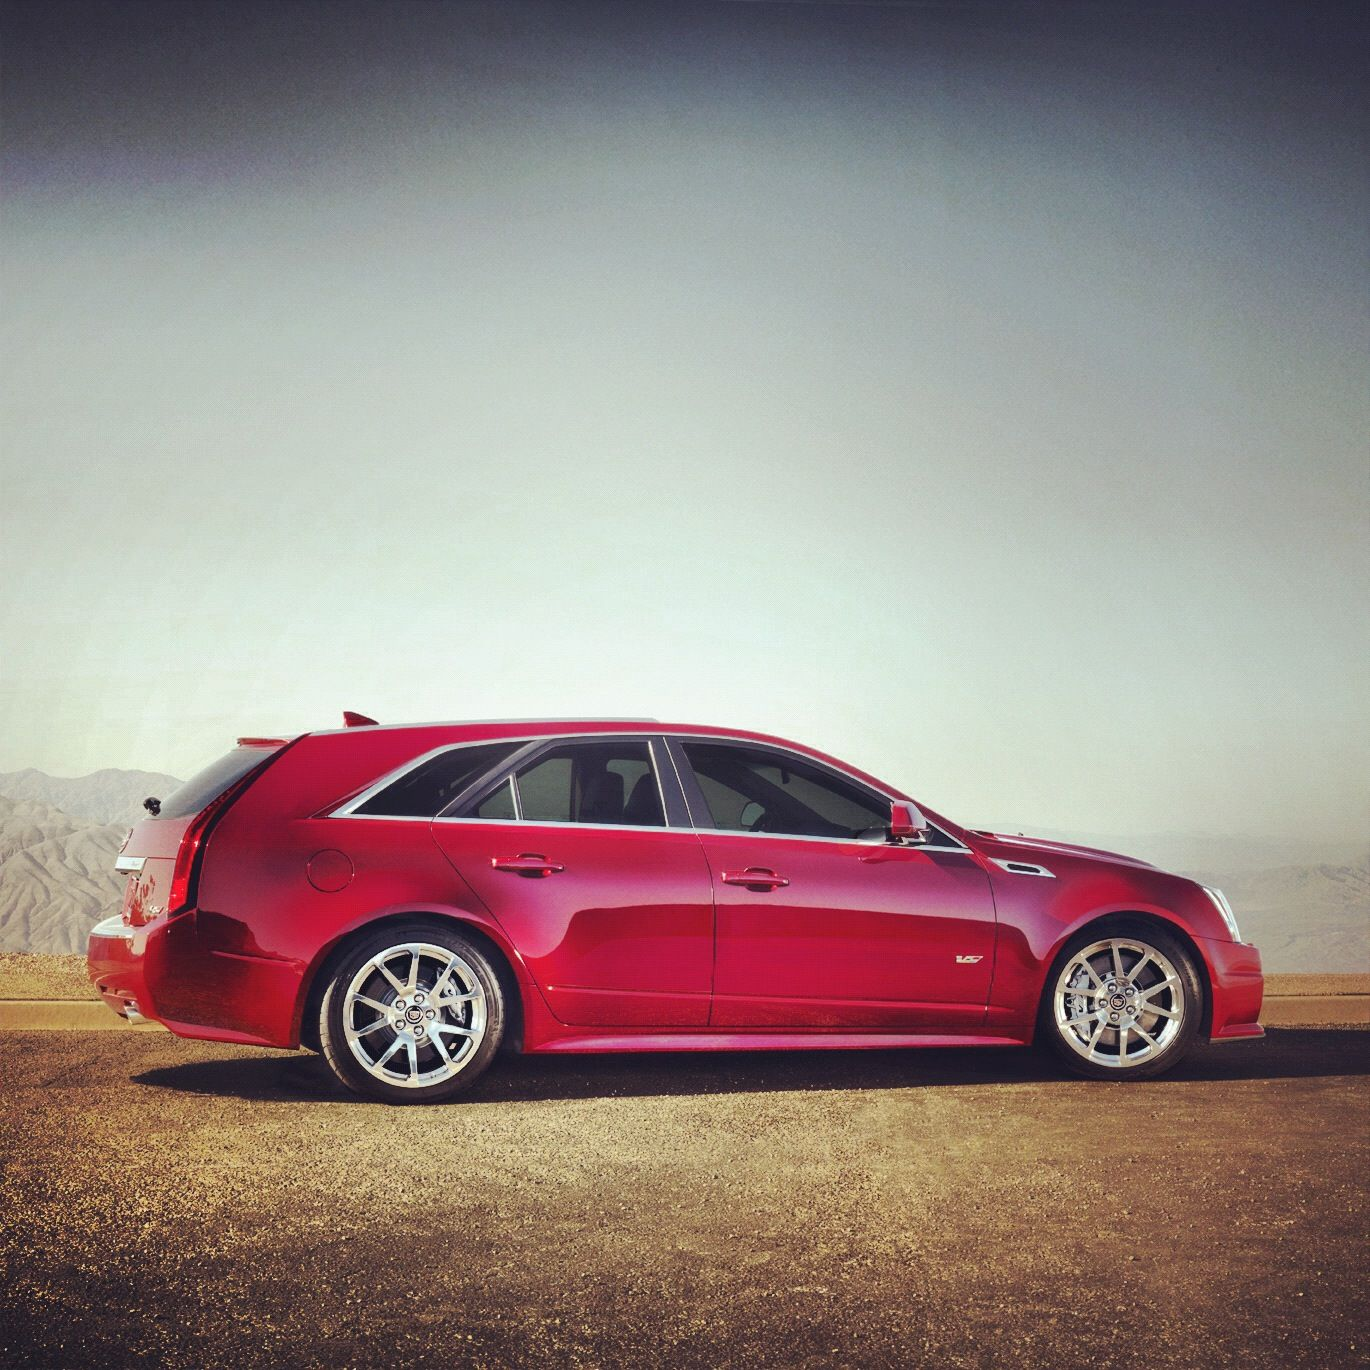 Cadillac Cts V Wagon For Sale: The #Cadillac #CTS-V #Wagon #Performance